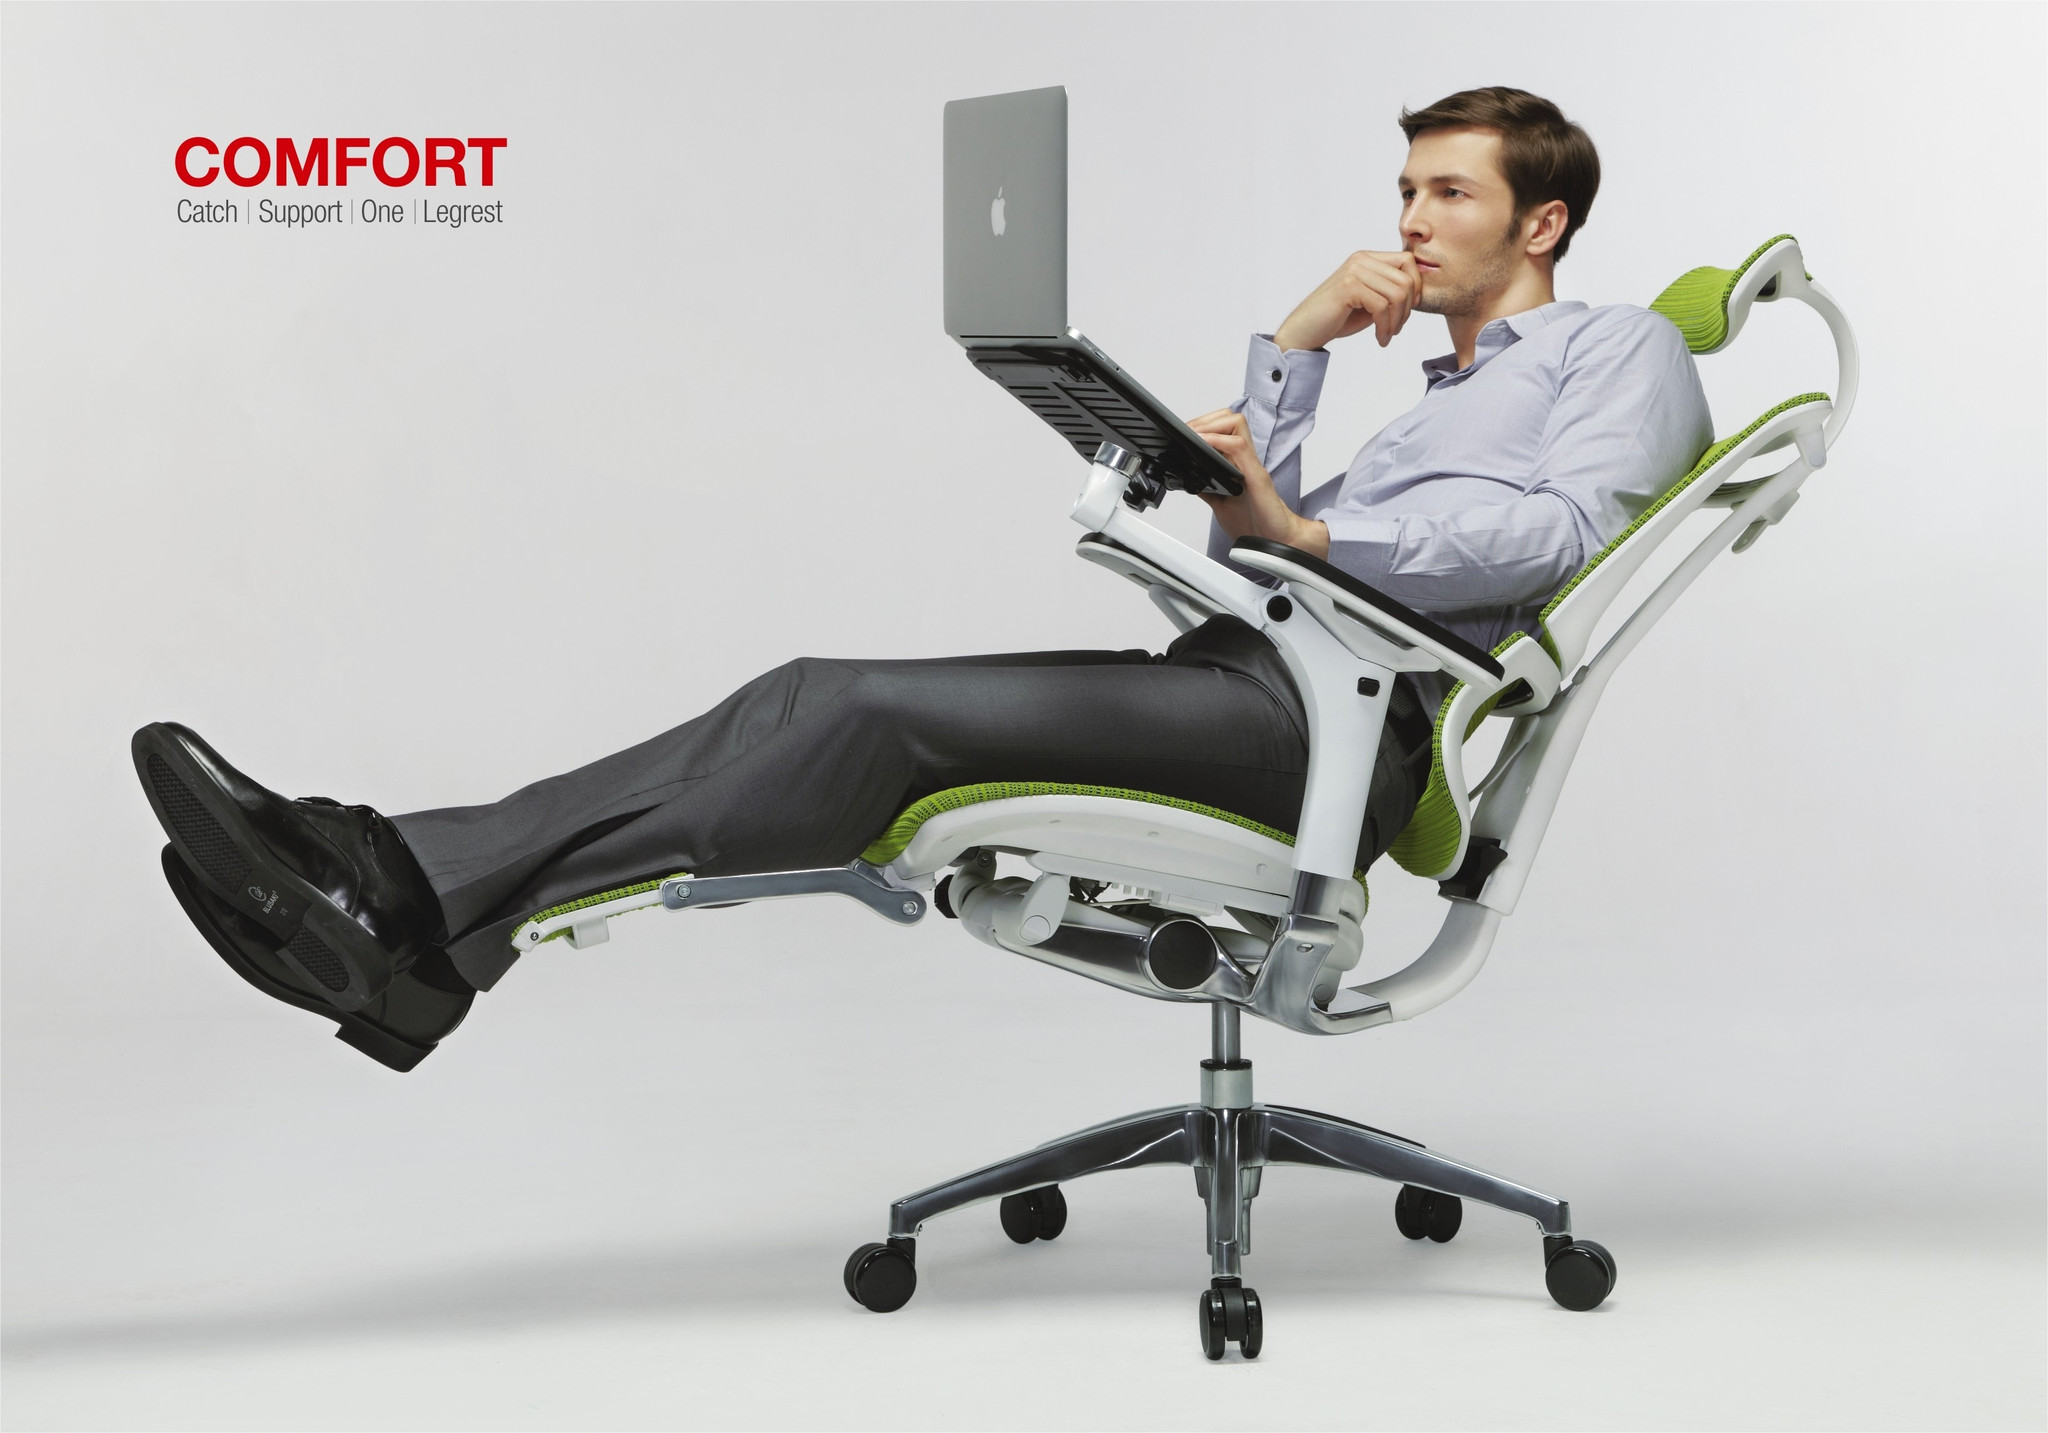 Ergonomic Work Chairs Mickeycurtis Welcome To My World